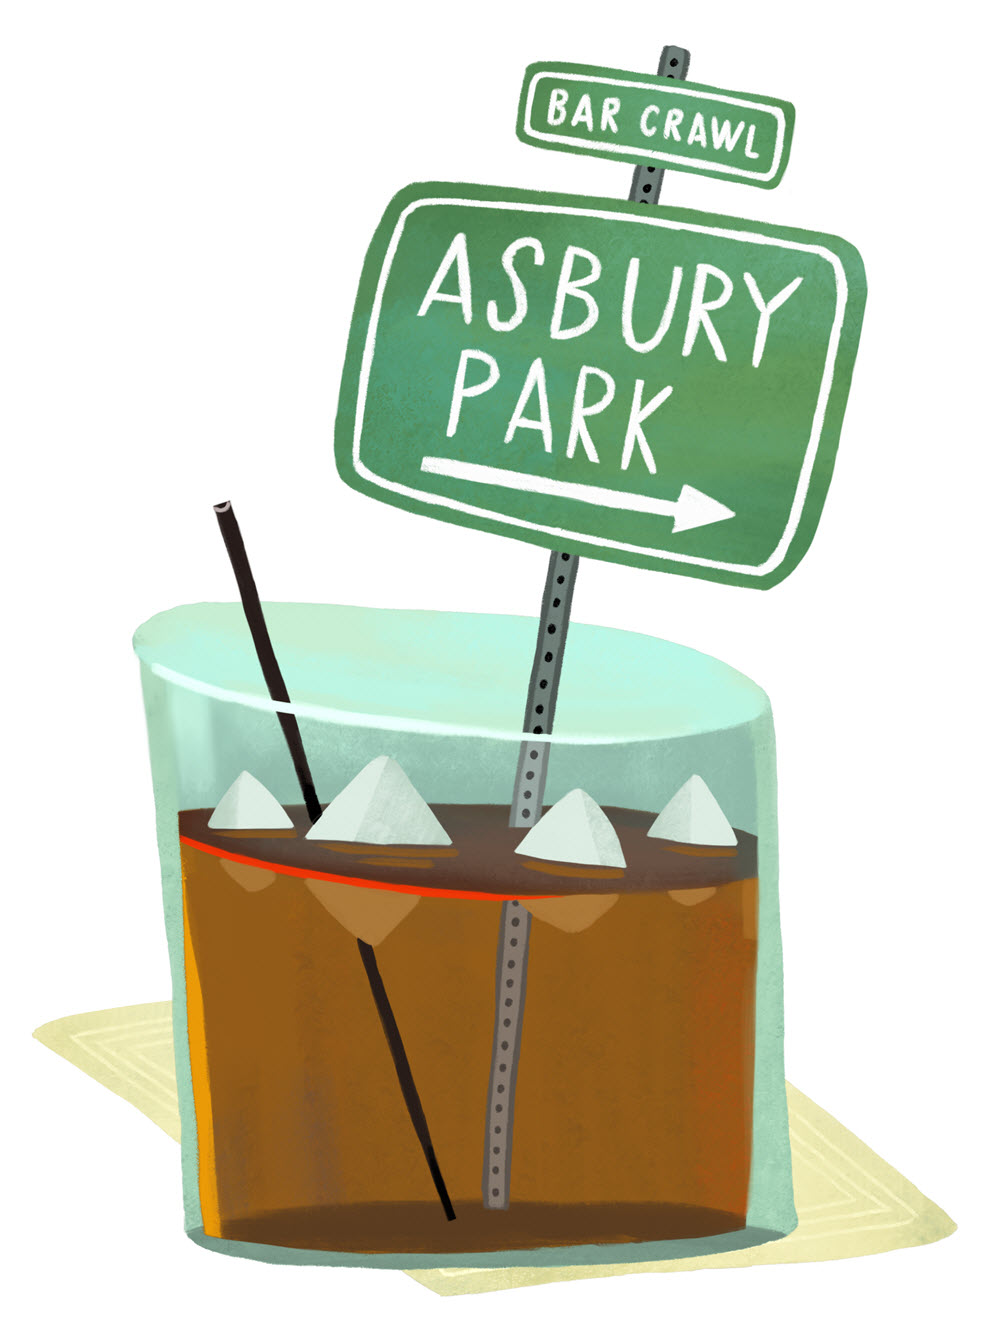 Asbury Park Illustration Mark Hoffmann